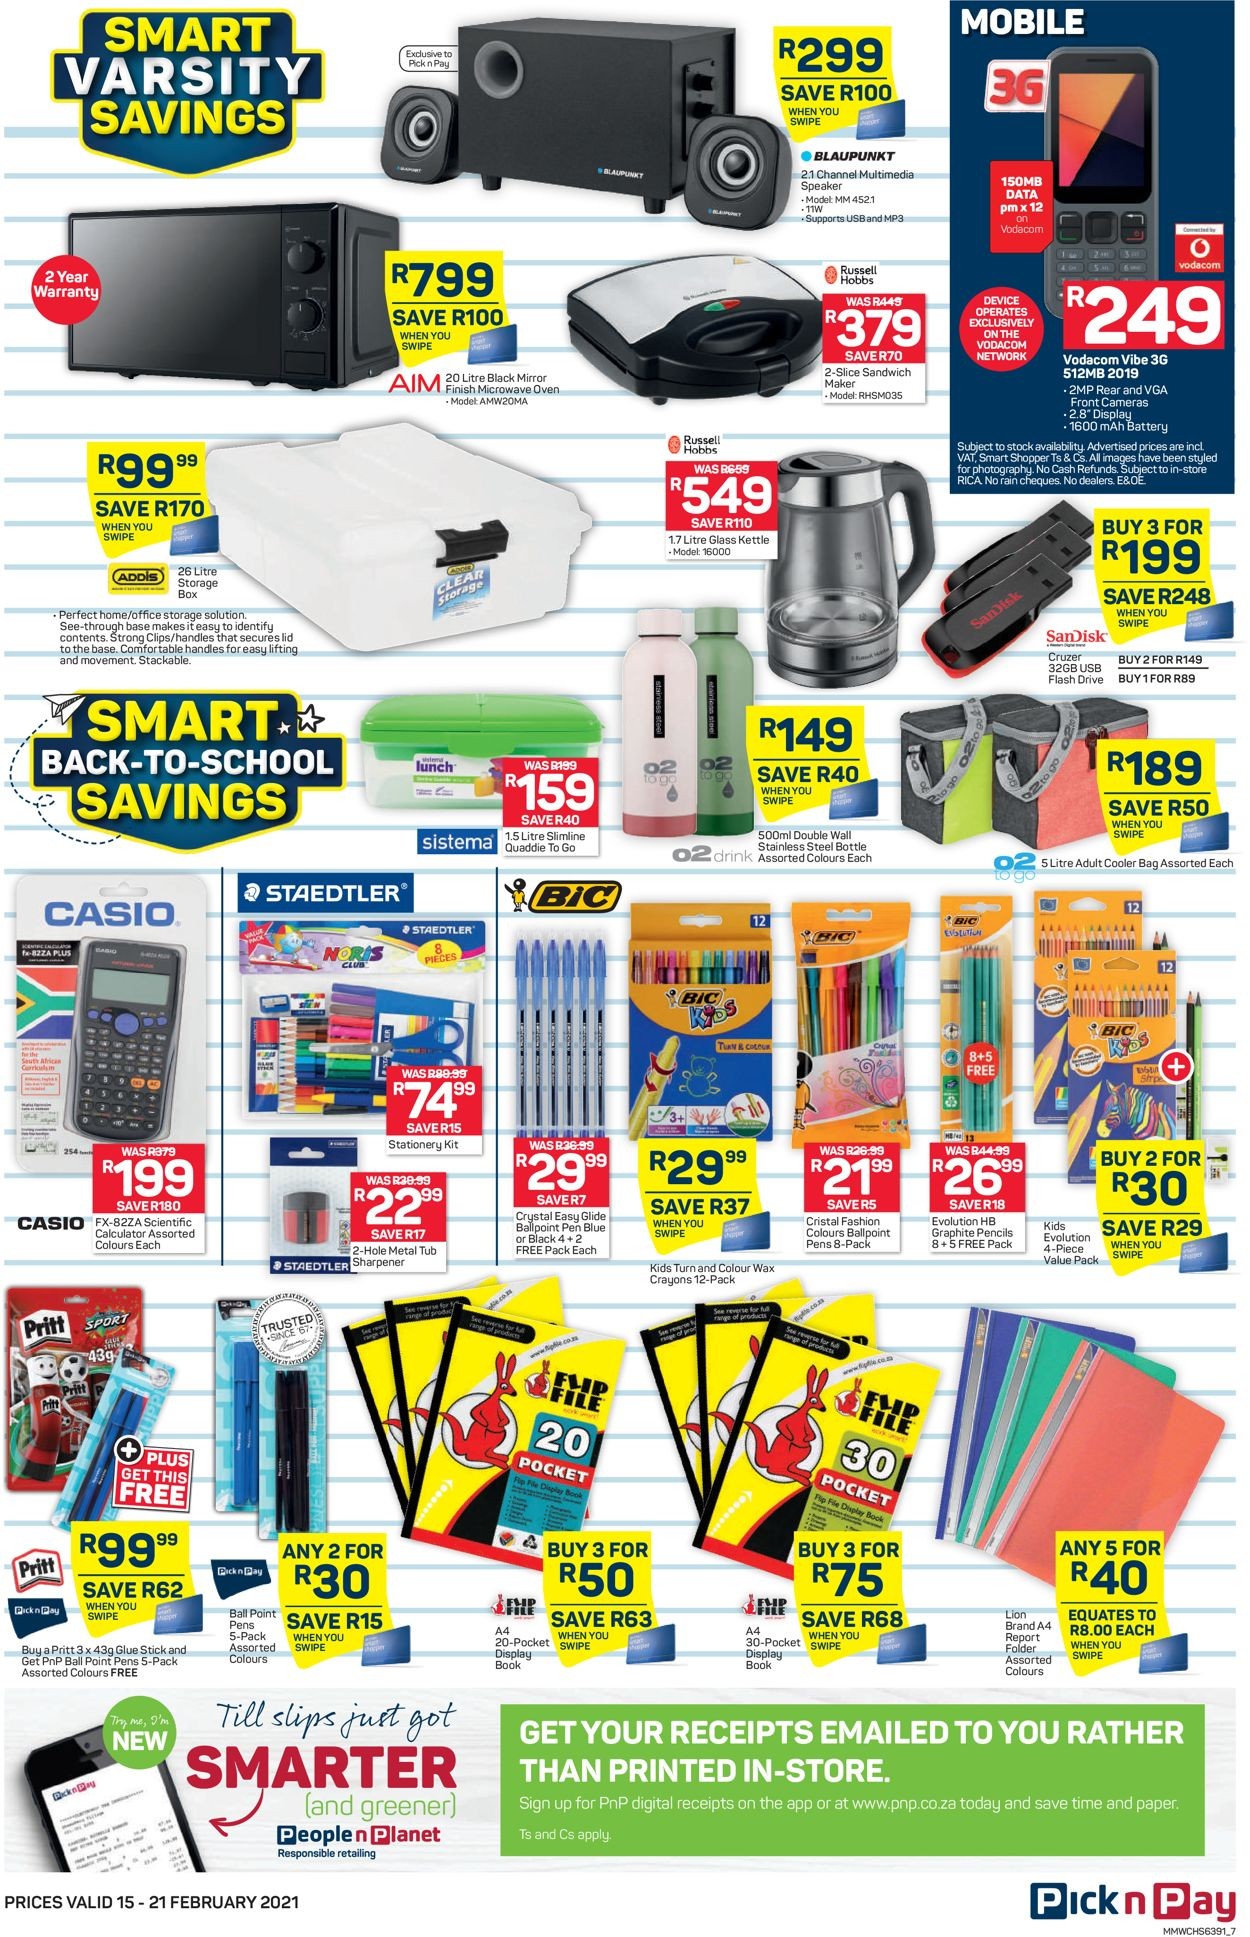 Pick n Pay Catalogue - 2021/02/15-2021/02/21 (Page 7)